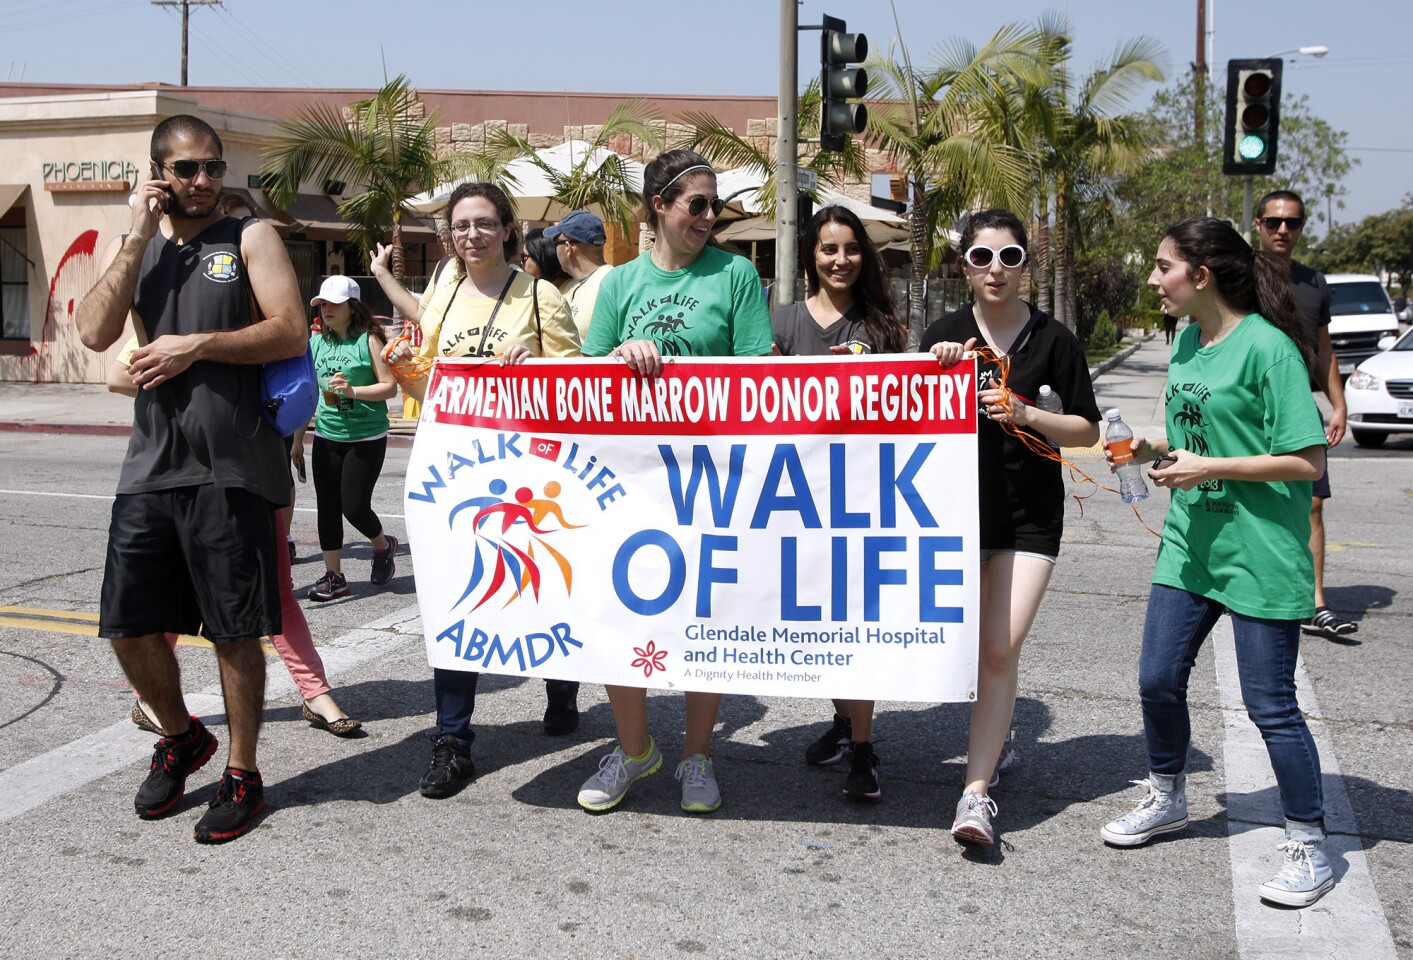 Photo Gallery: Walk for Life walk-a-thon in Glendale